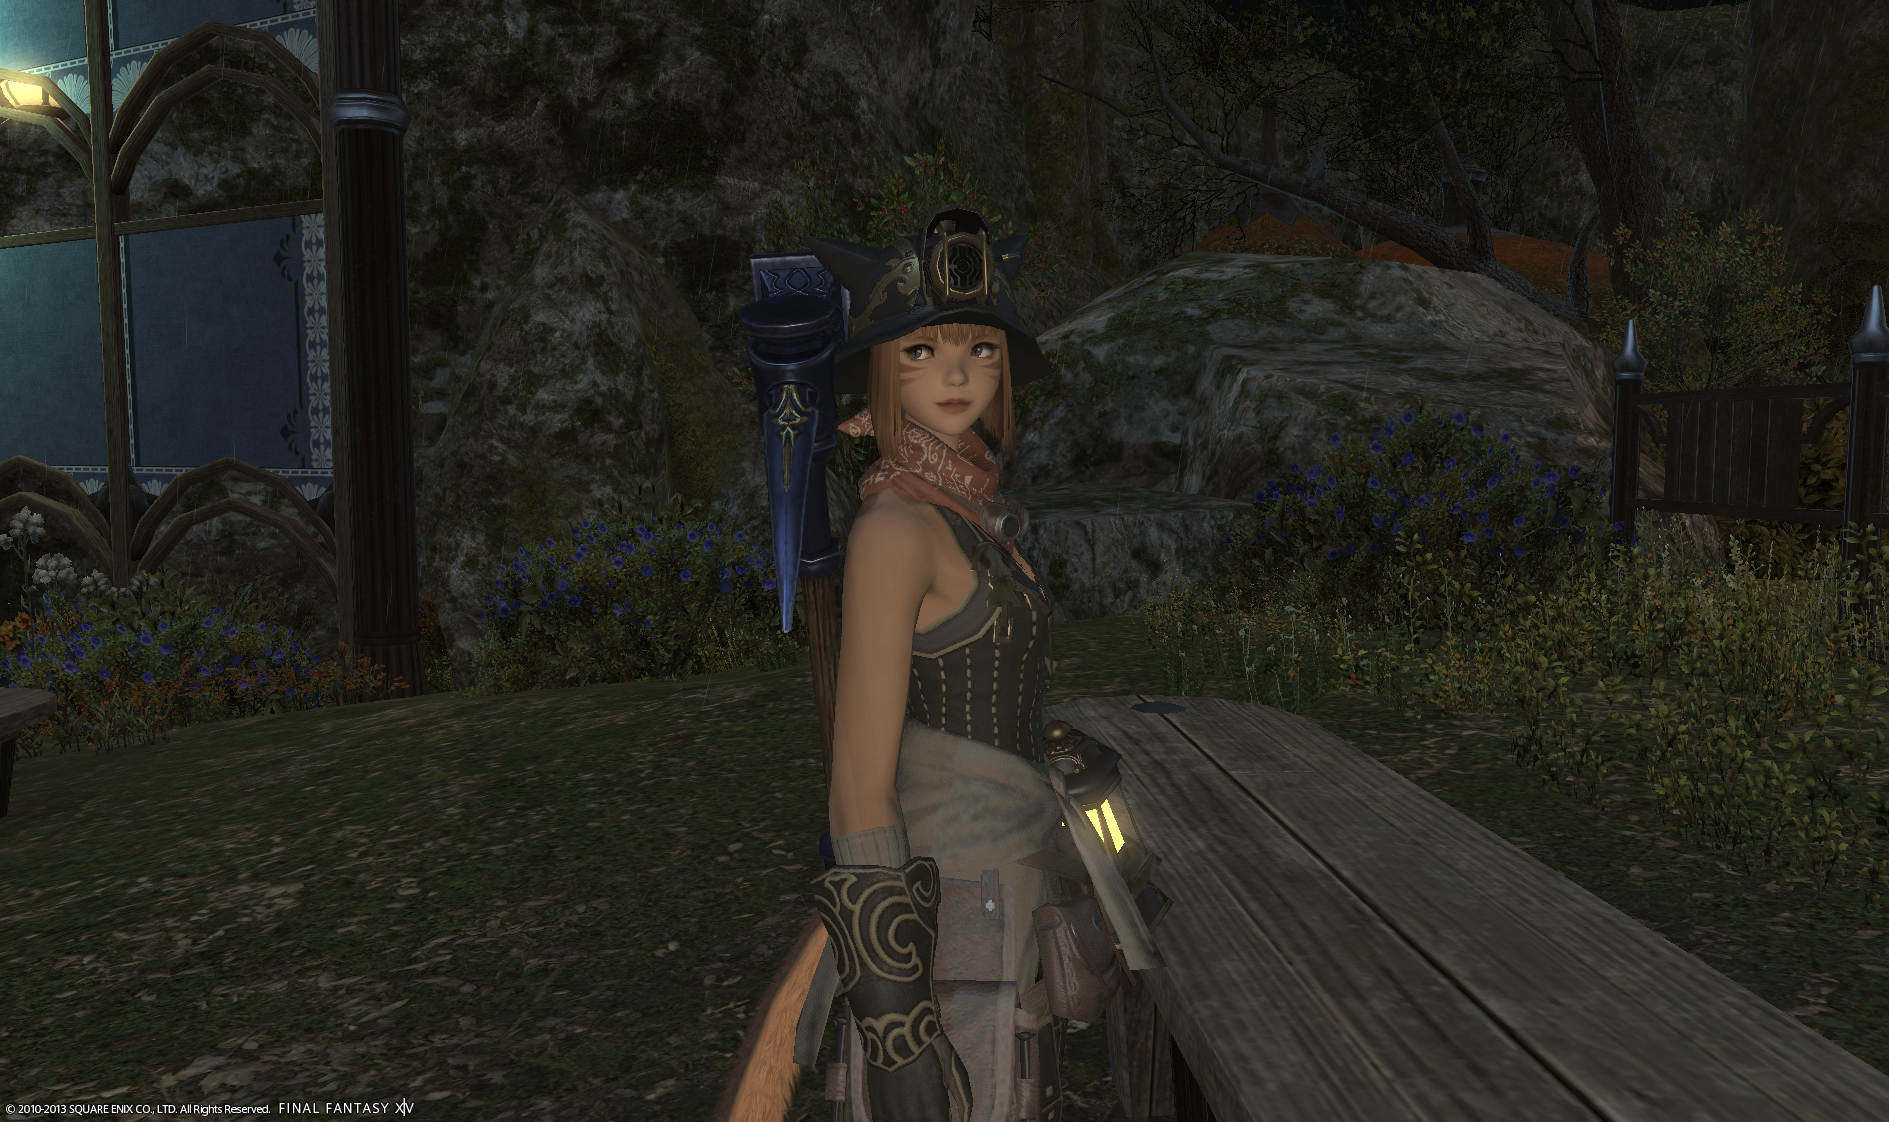 ddz ffxiv scaling them hurts down bucket size file need bigger 1920 stupid reborn screenshot thread realm fantasy 1017 somewhat less with release final